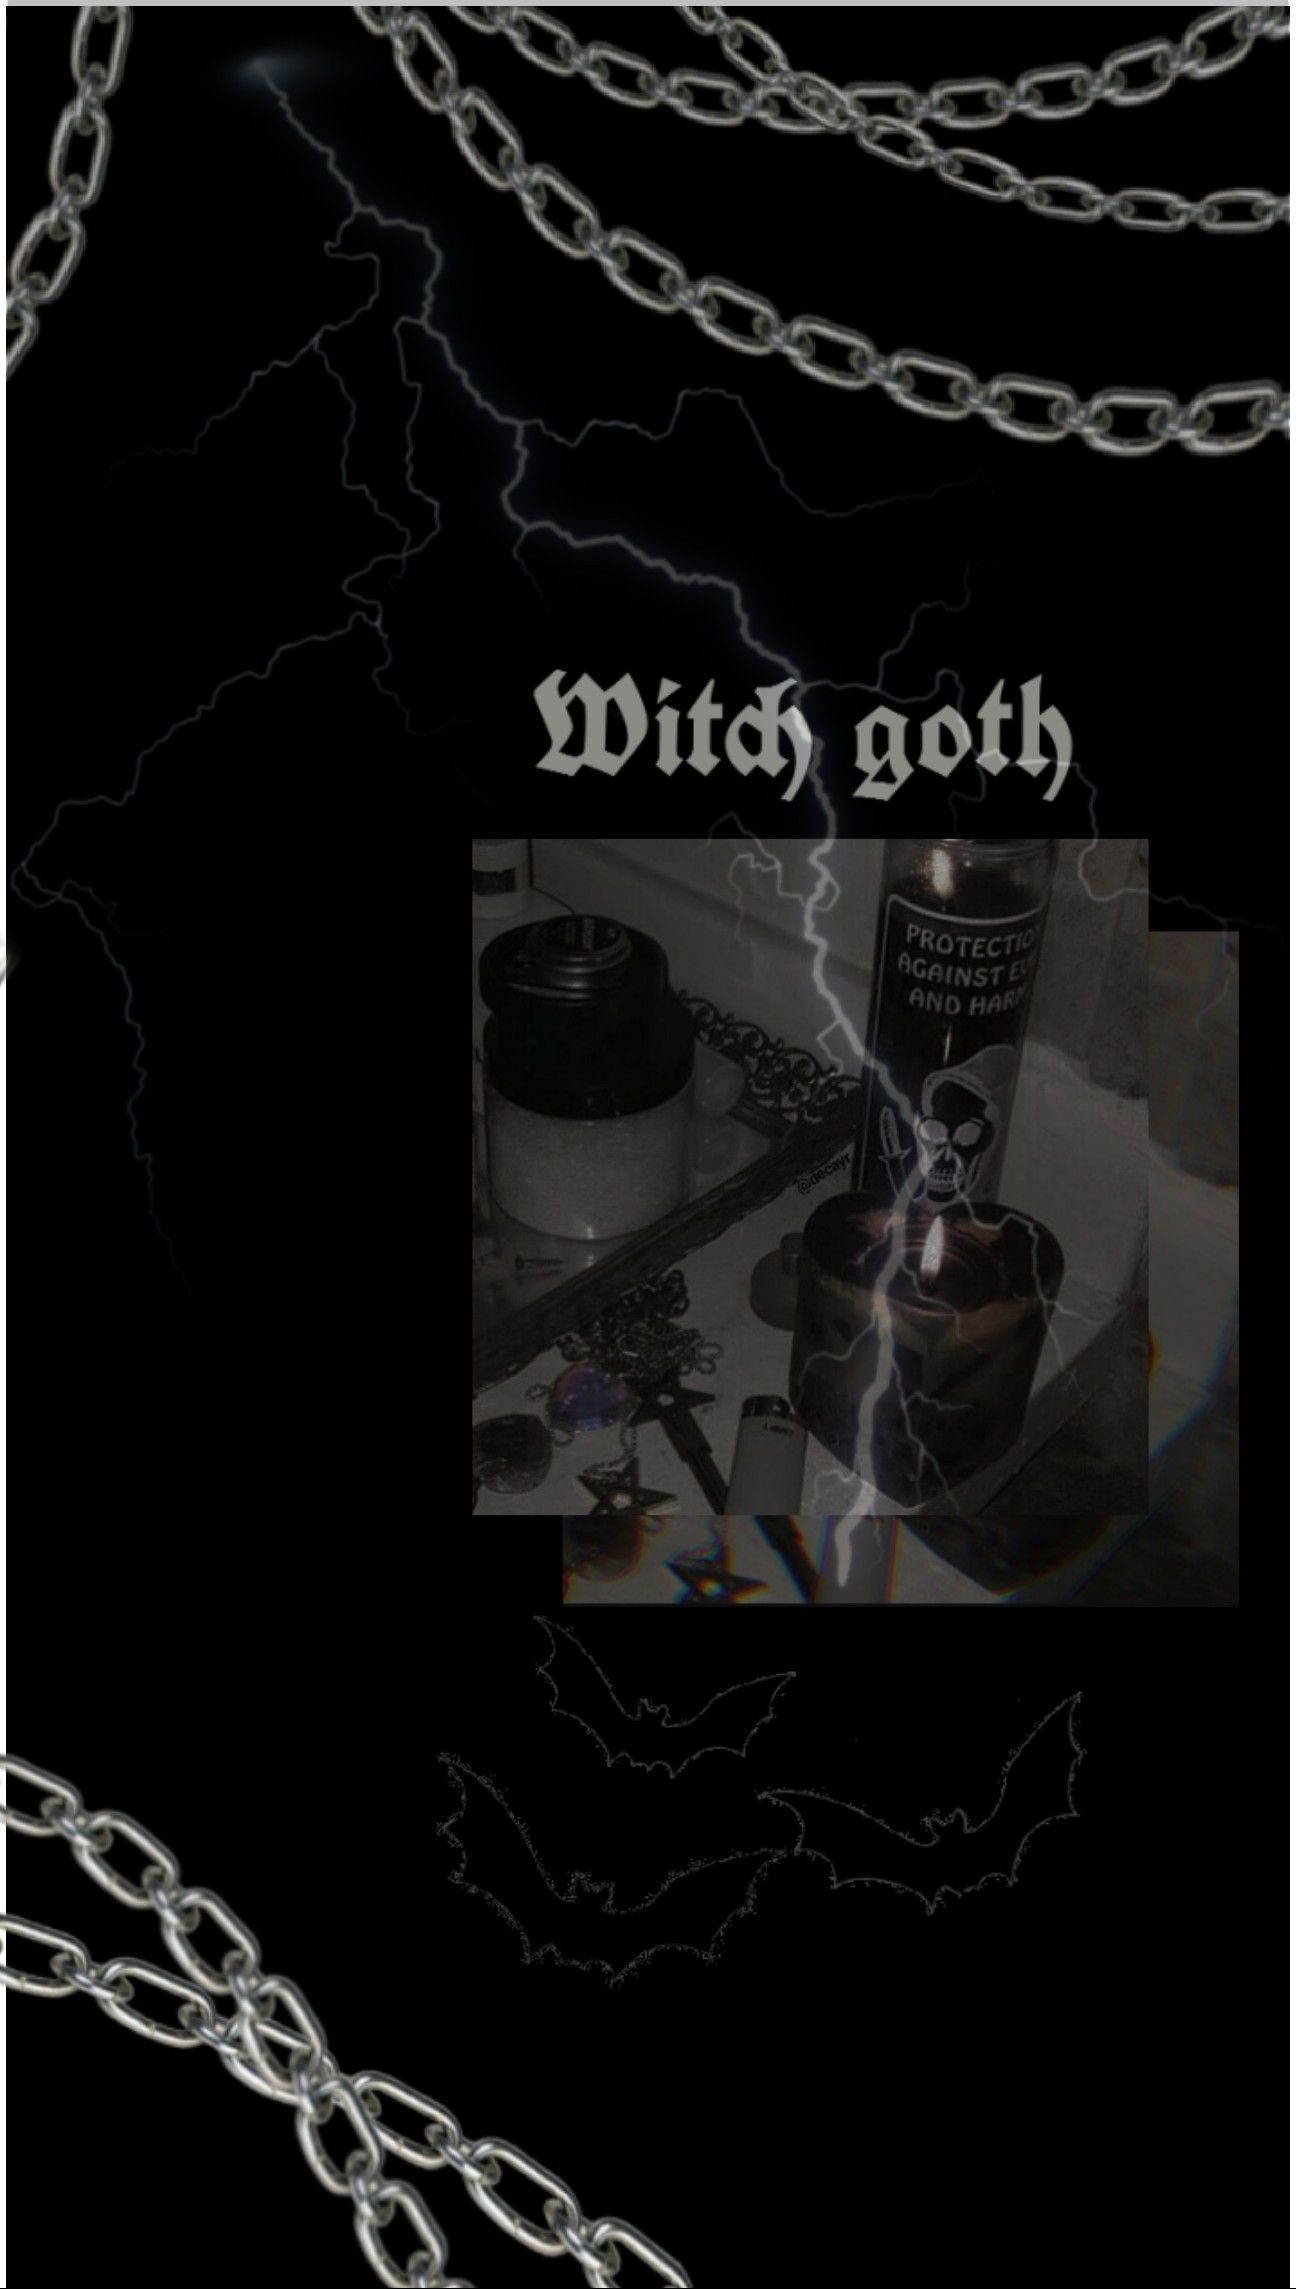 Witch Goth Gothic Wallpaper Goth Wallpaper Black Aesthetic Wallpaper